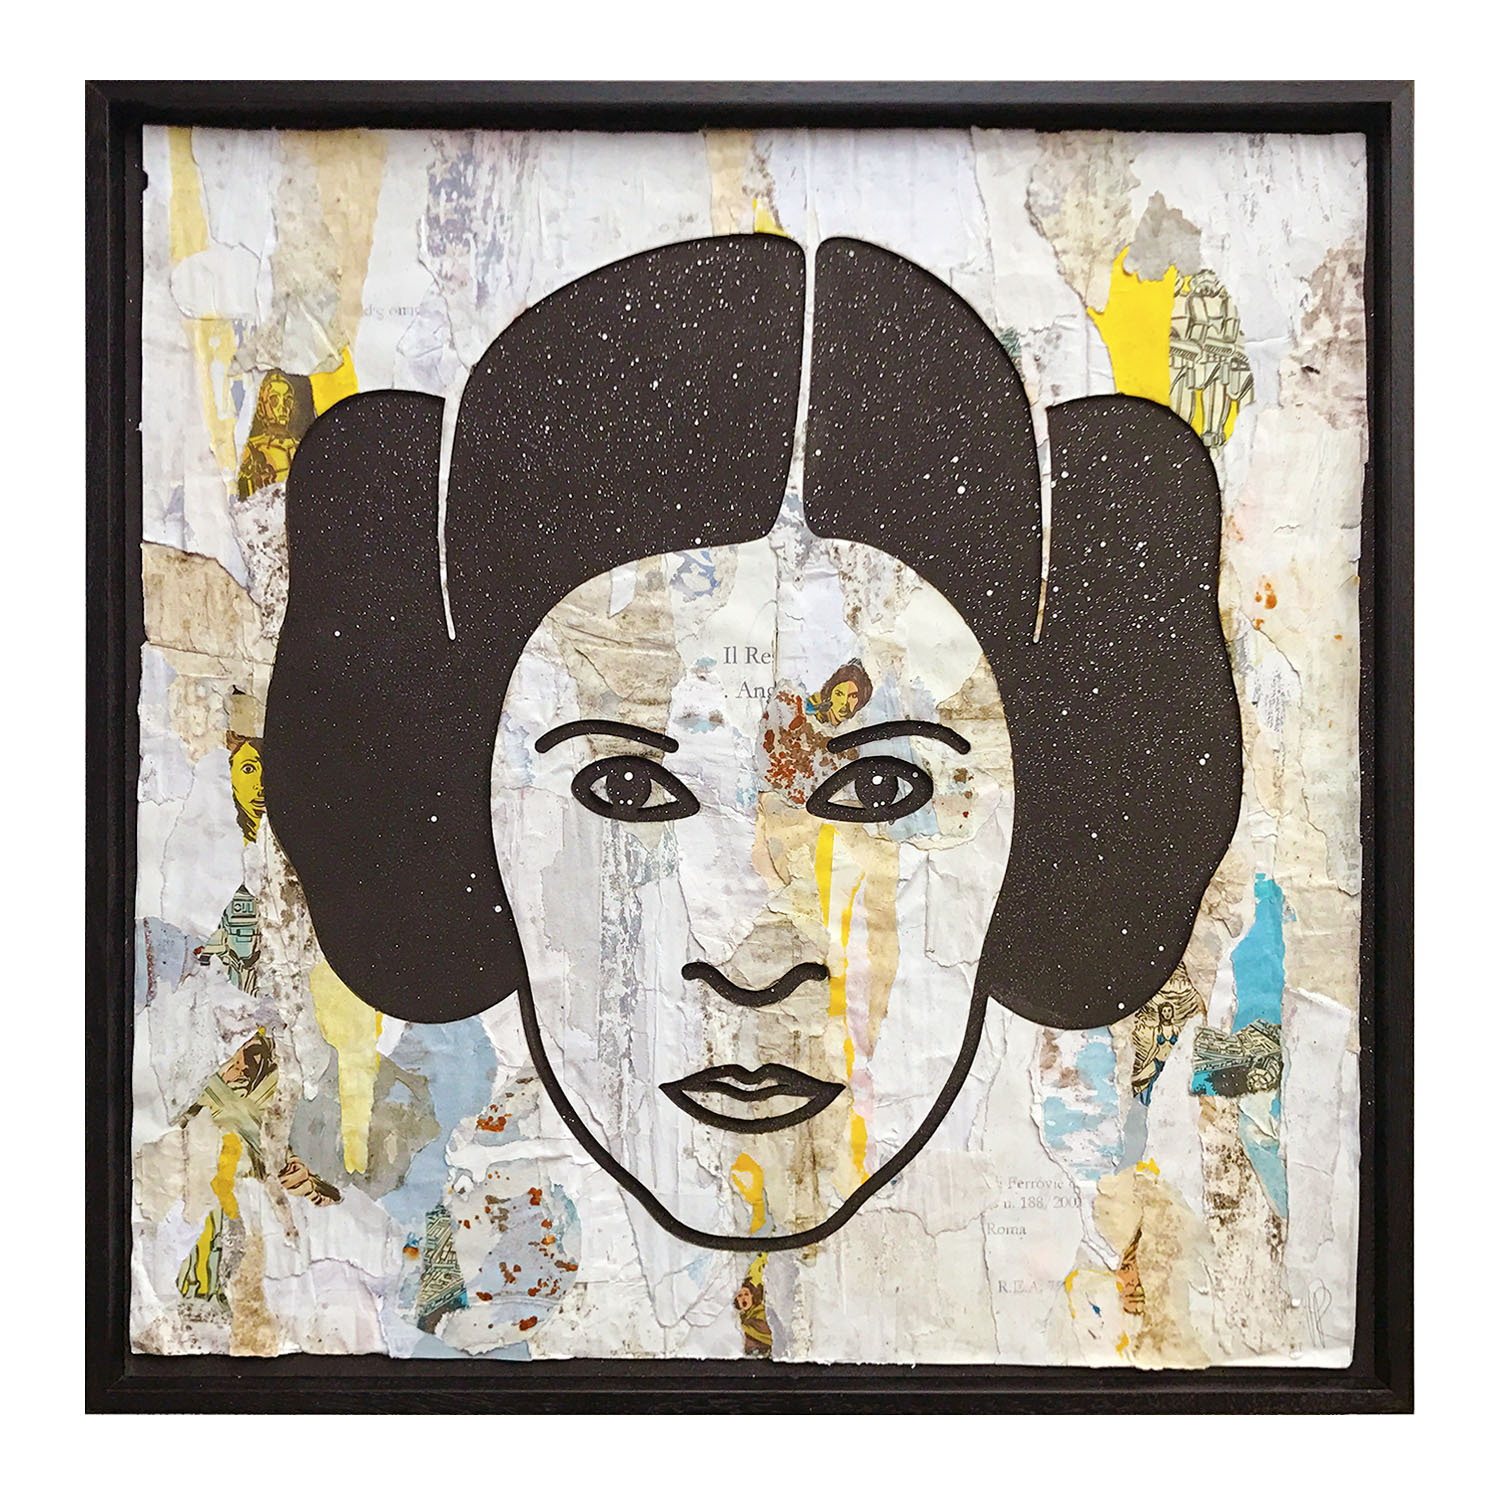 Princess Leia portrait made with paper sourced from this location